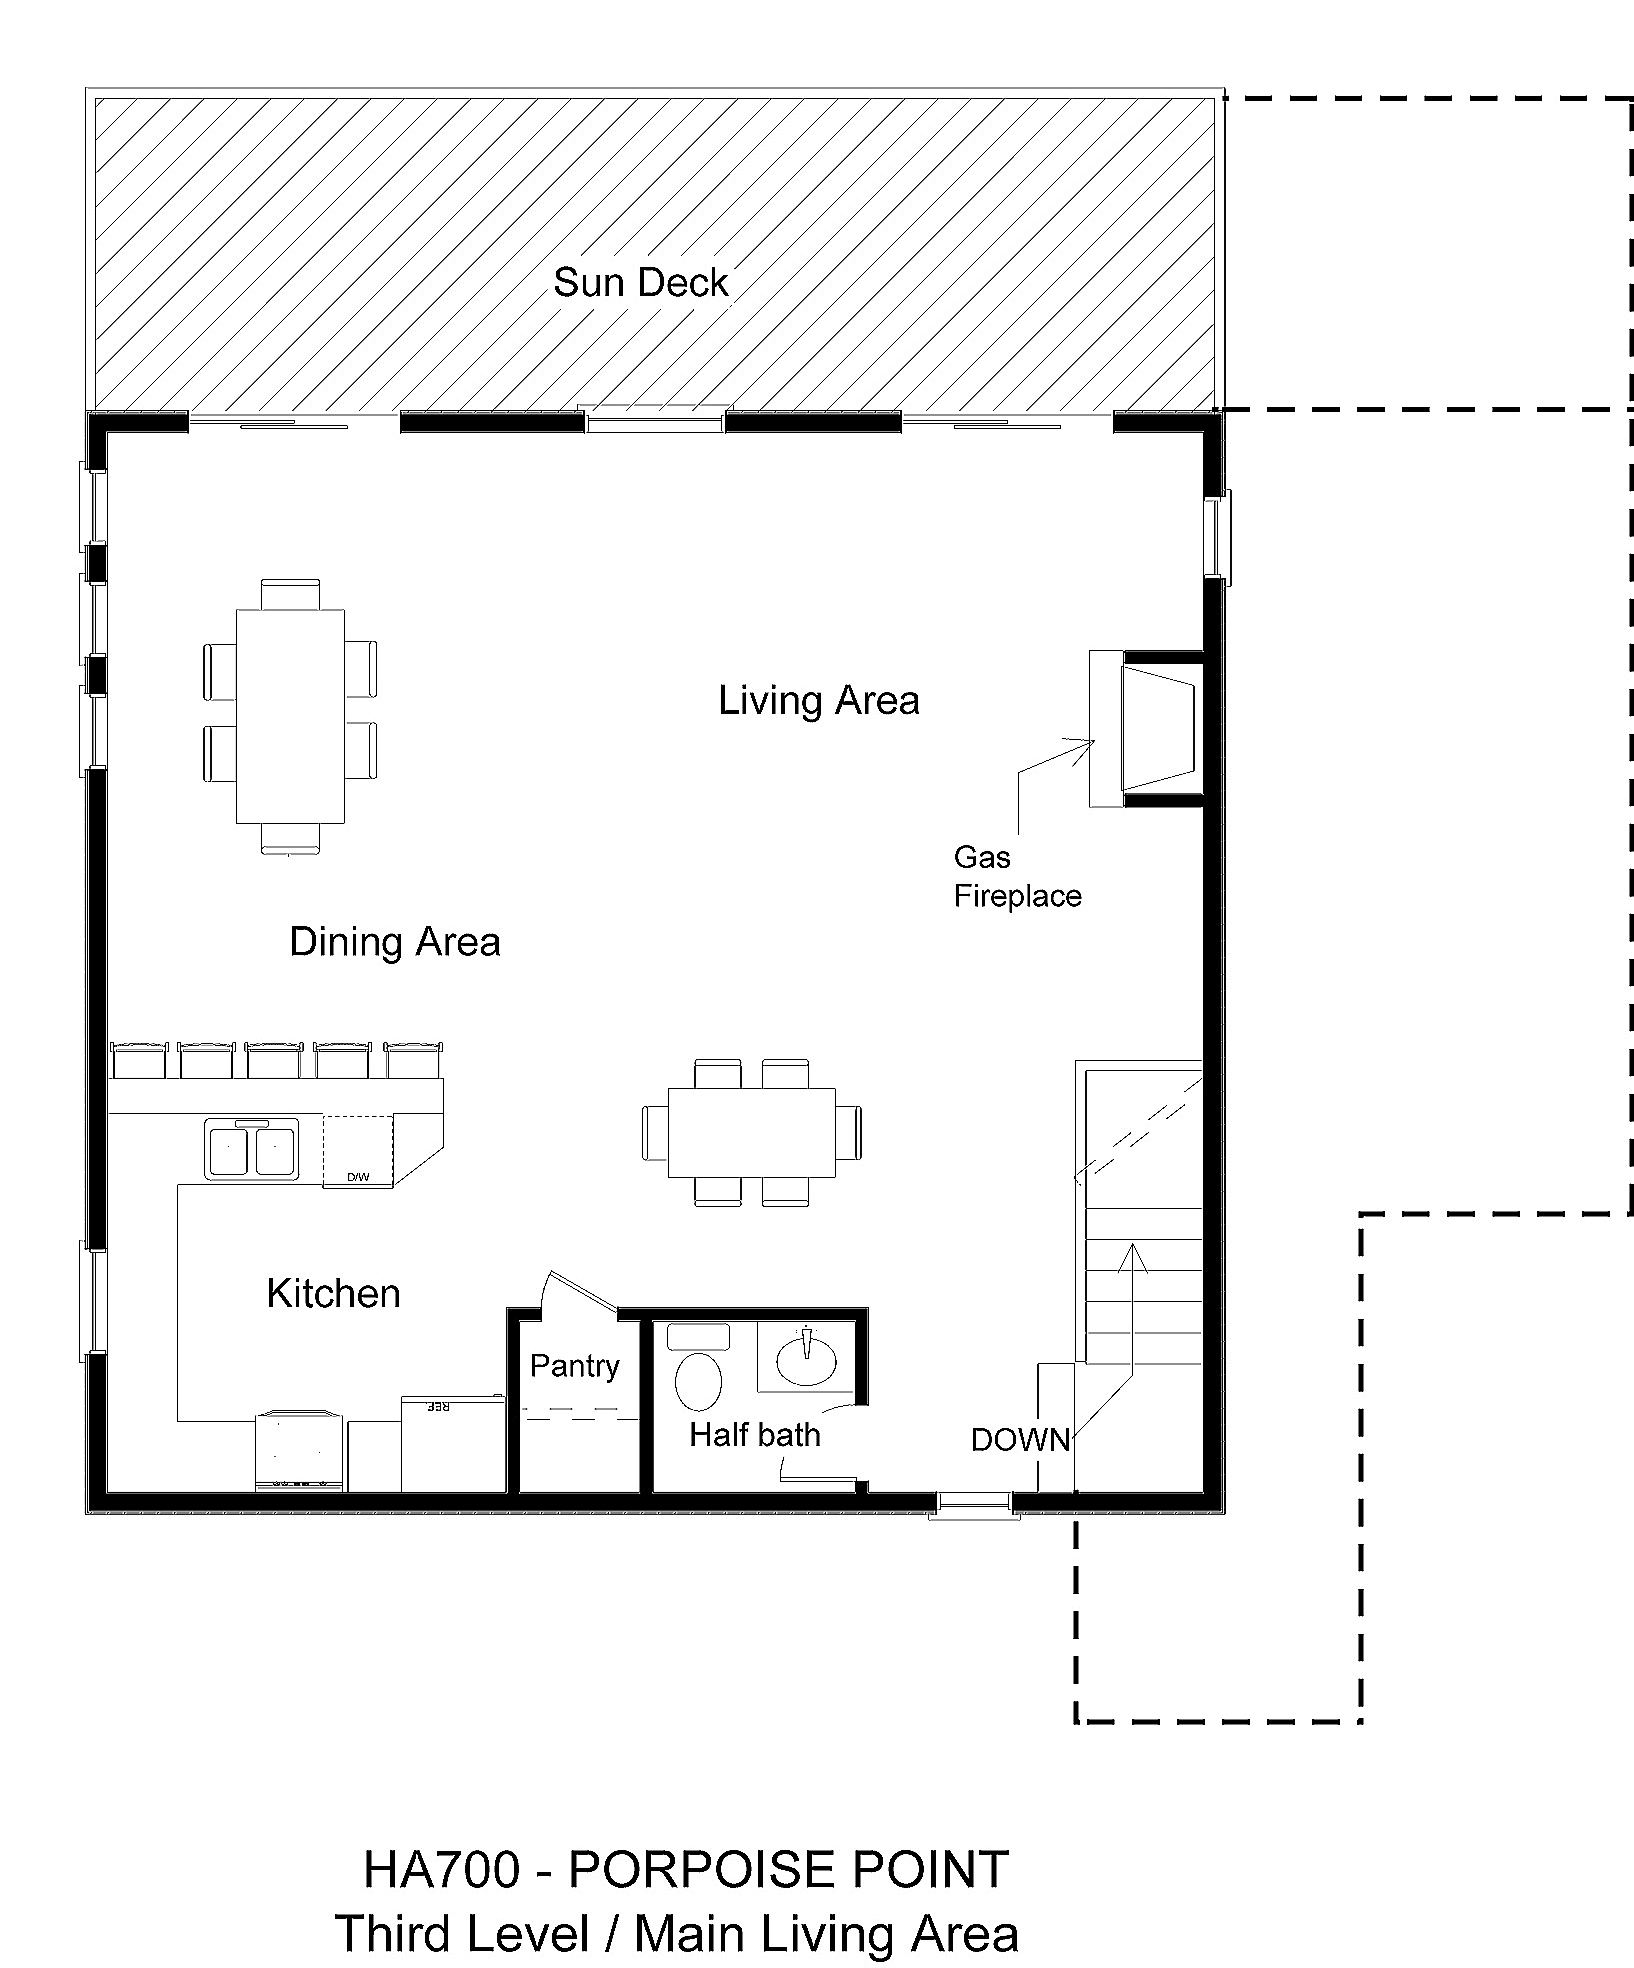 One story house plans with jack and jill bathrooms Jack and jill house plans